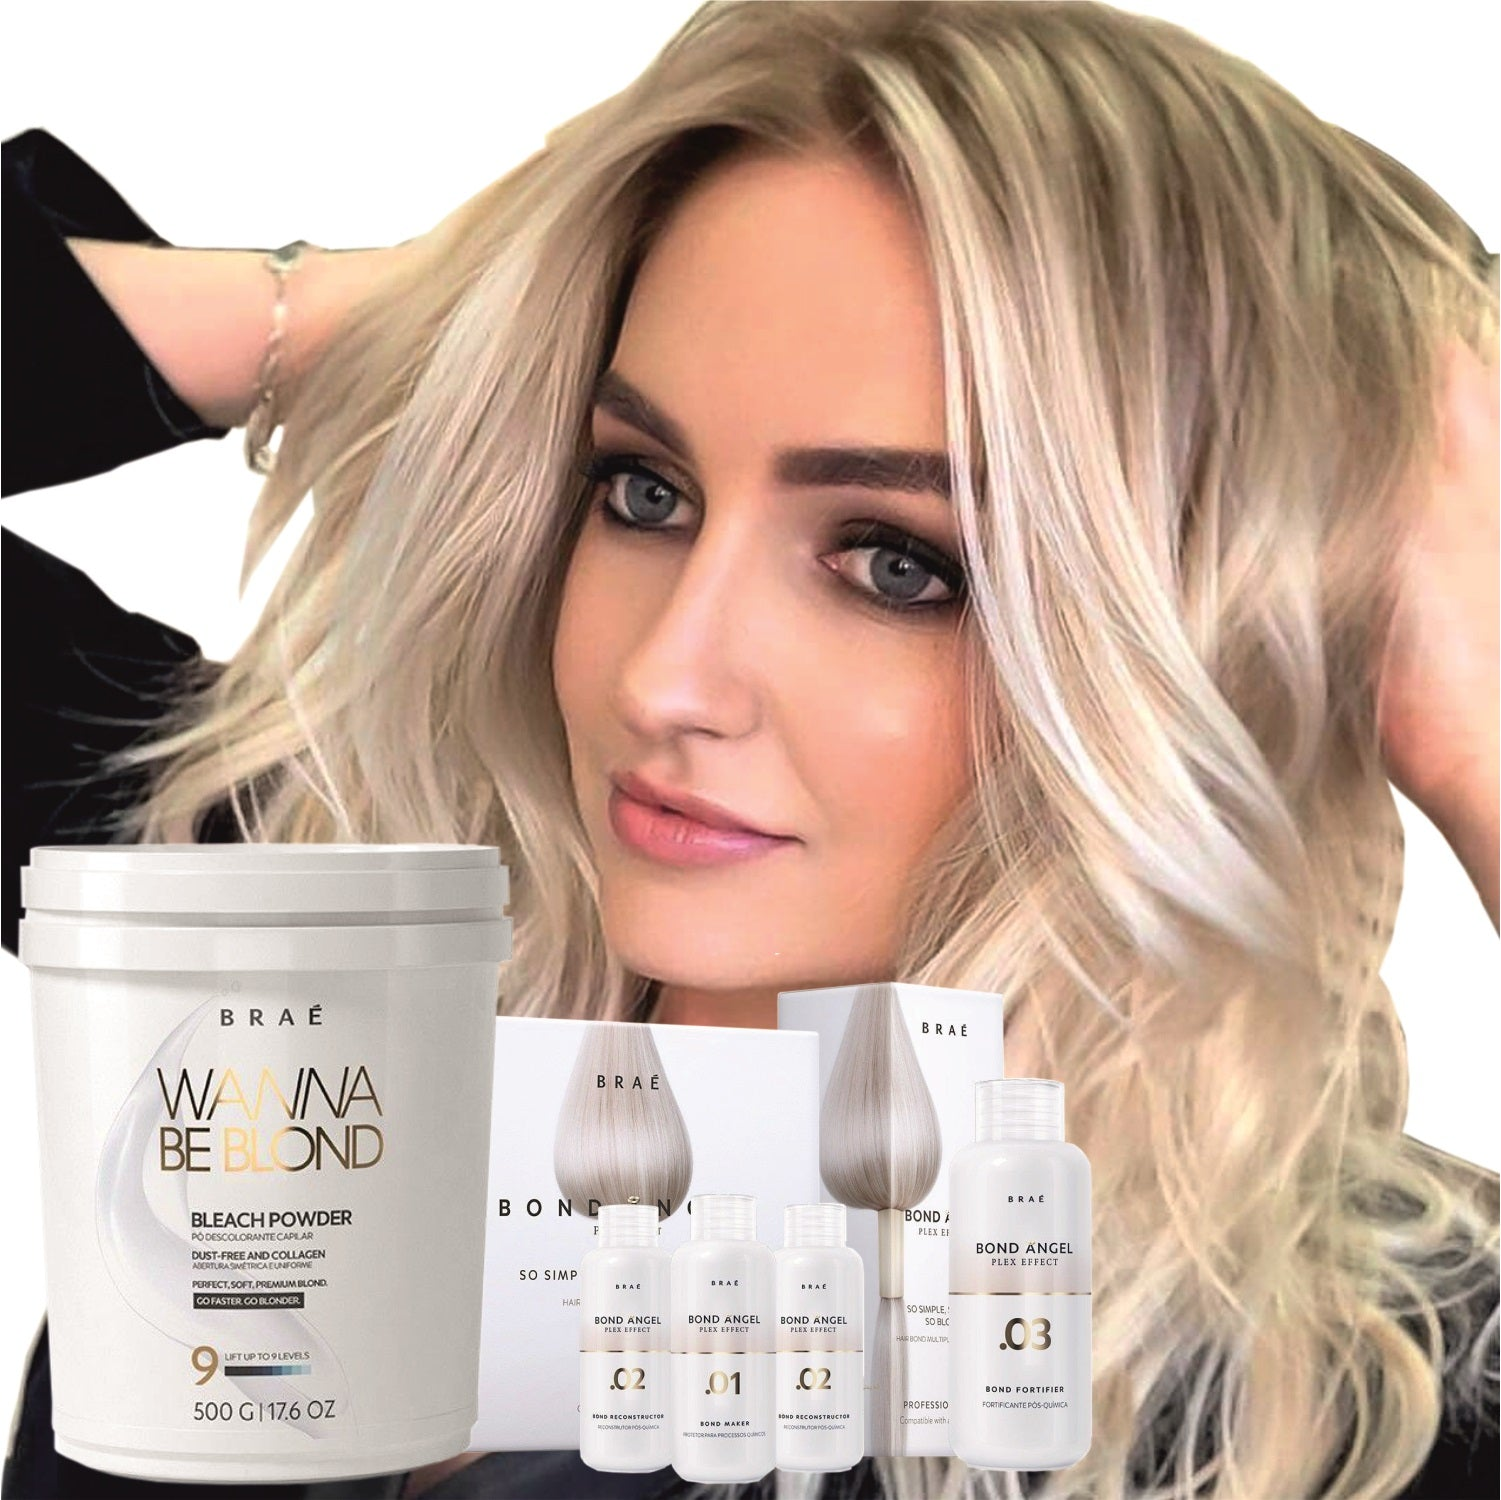 Hair Bleaching Set Powder Lightener Wanna Be Blond 17.6 oz and Bond Angel 100ml set plus Homecare - BRAE USA Home Care Step 3